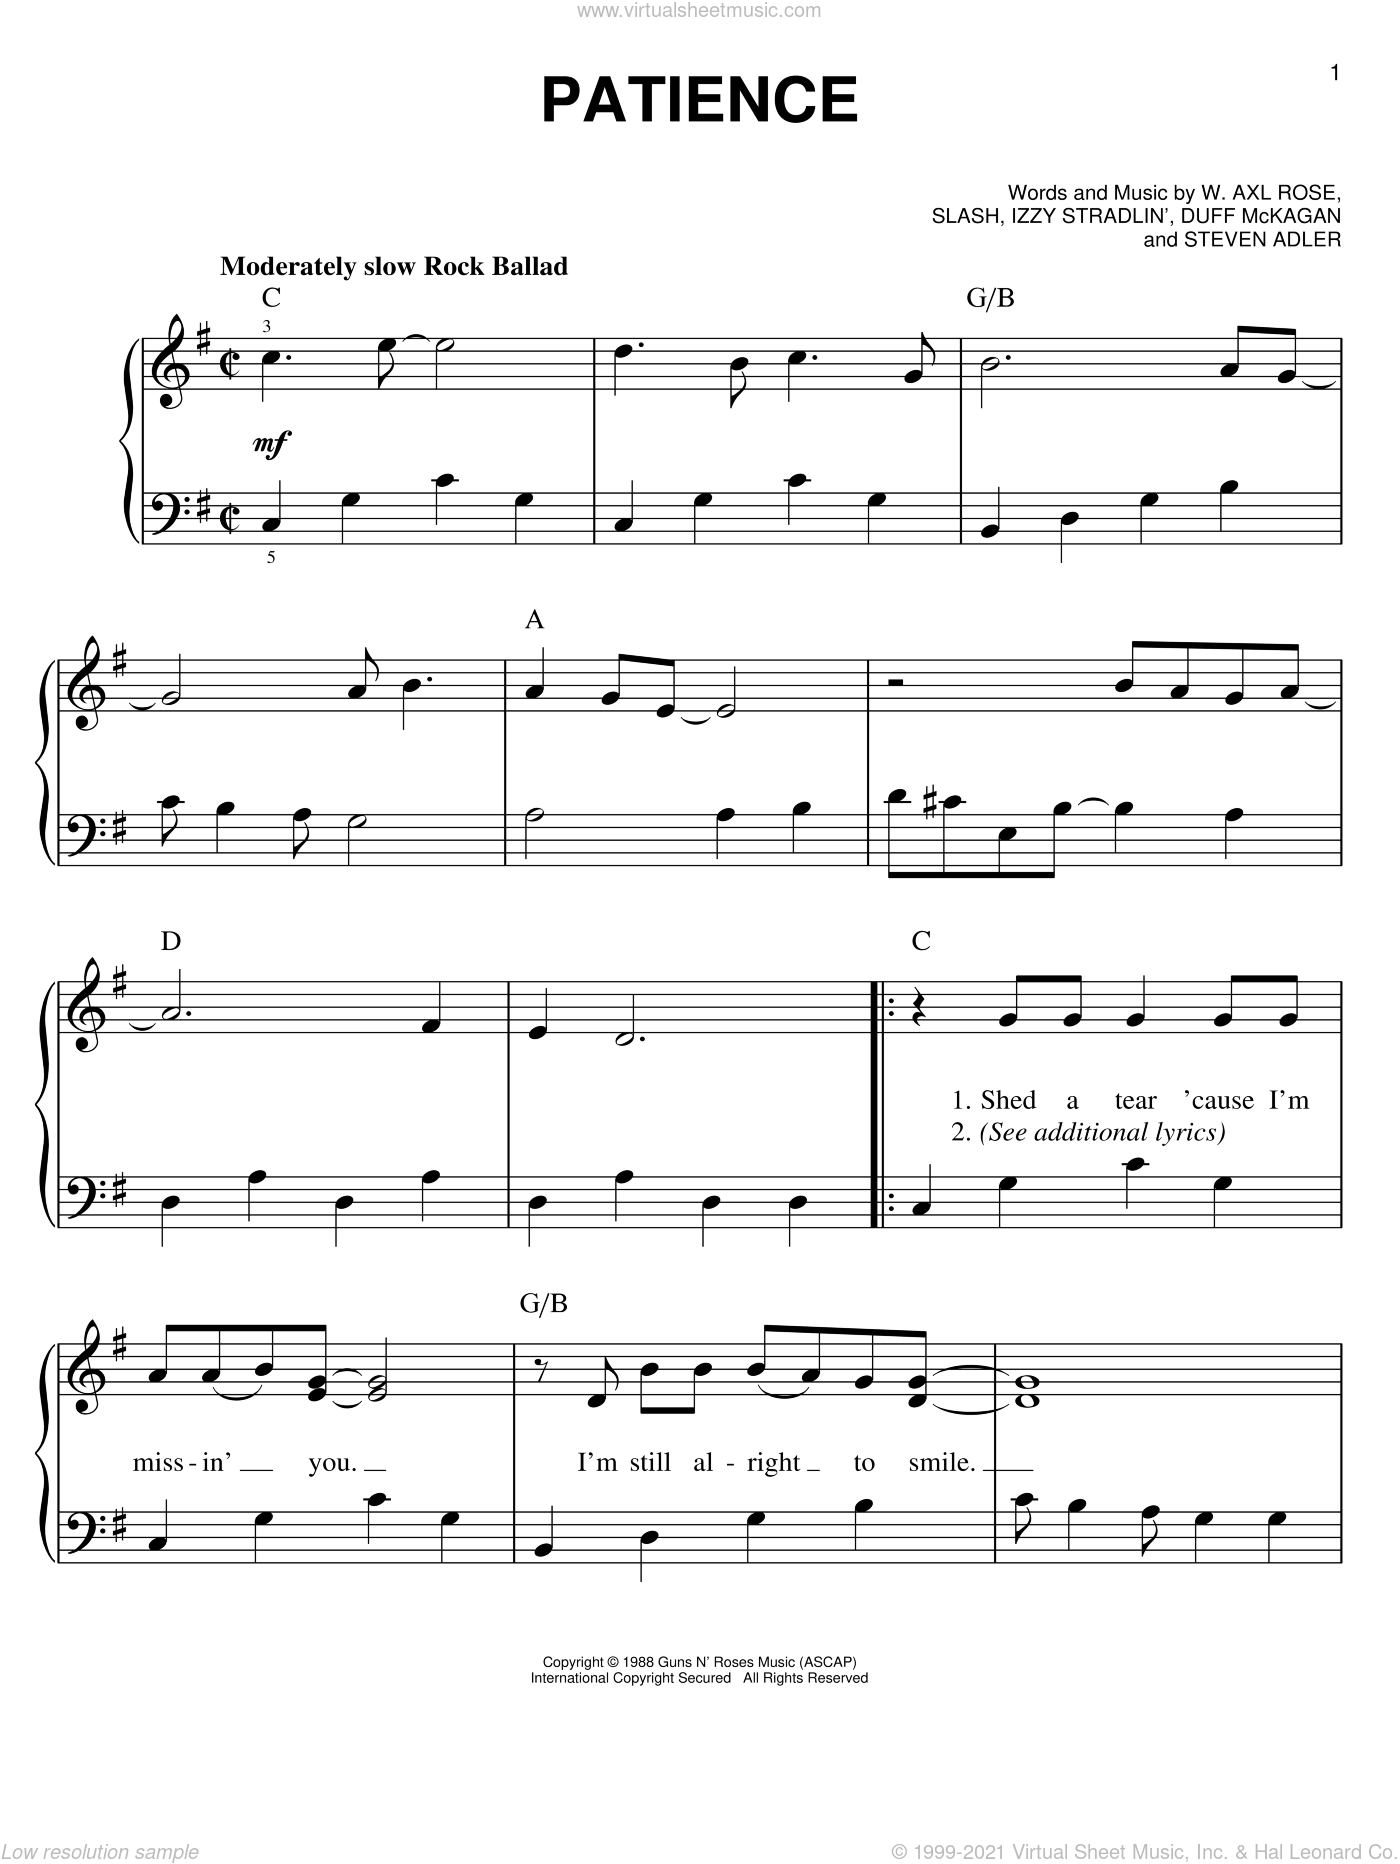 Patience sheet music for piano solo by Axl Rose, Duff McKagan, Slash and Steven Adler. Score Image Preview.